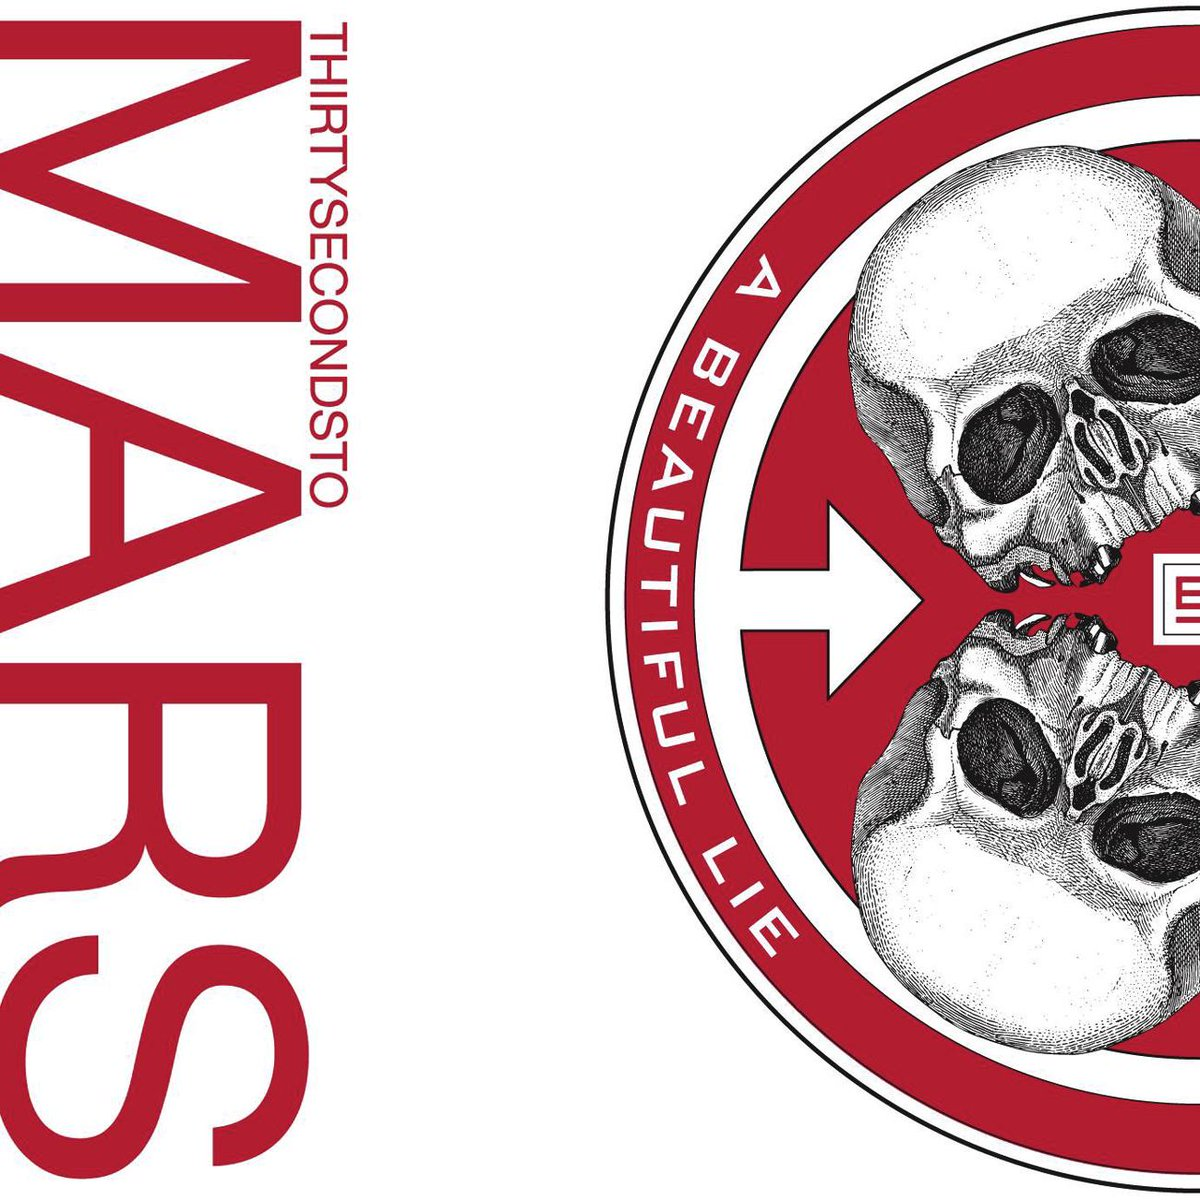 RT @30SECONDSTOMARS: August 30, 2005 ✖ 10 YEARS AGO TODAY. What's your favorite song from #ABeautifulLie?  → http://t.co/SQC6Al00tp http://…